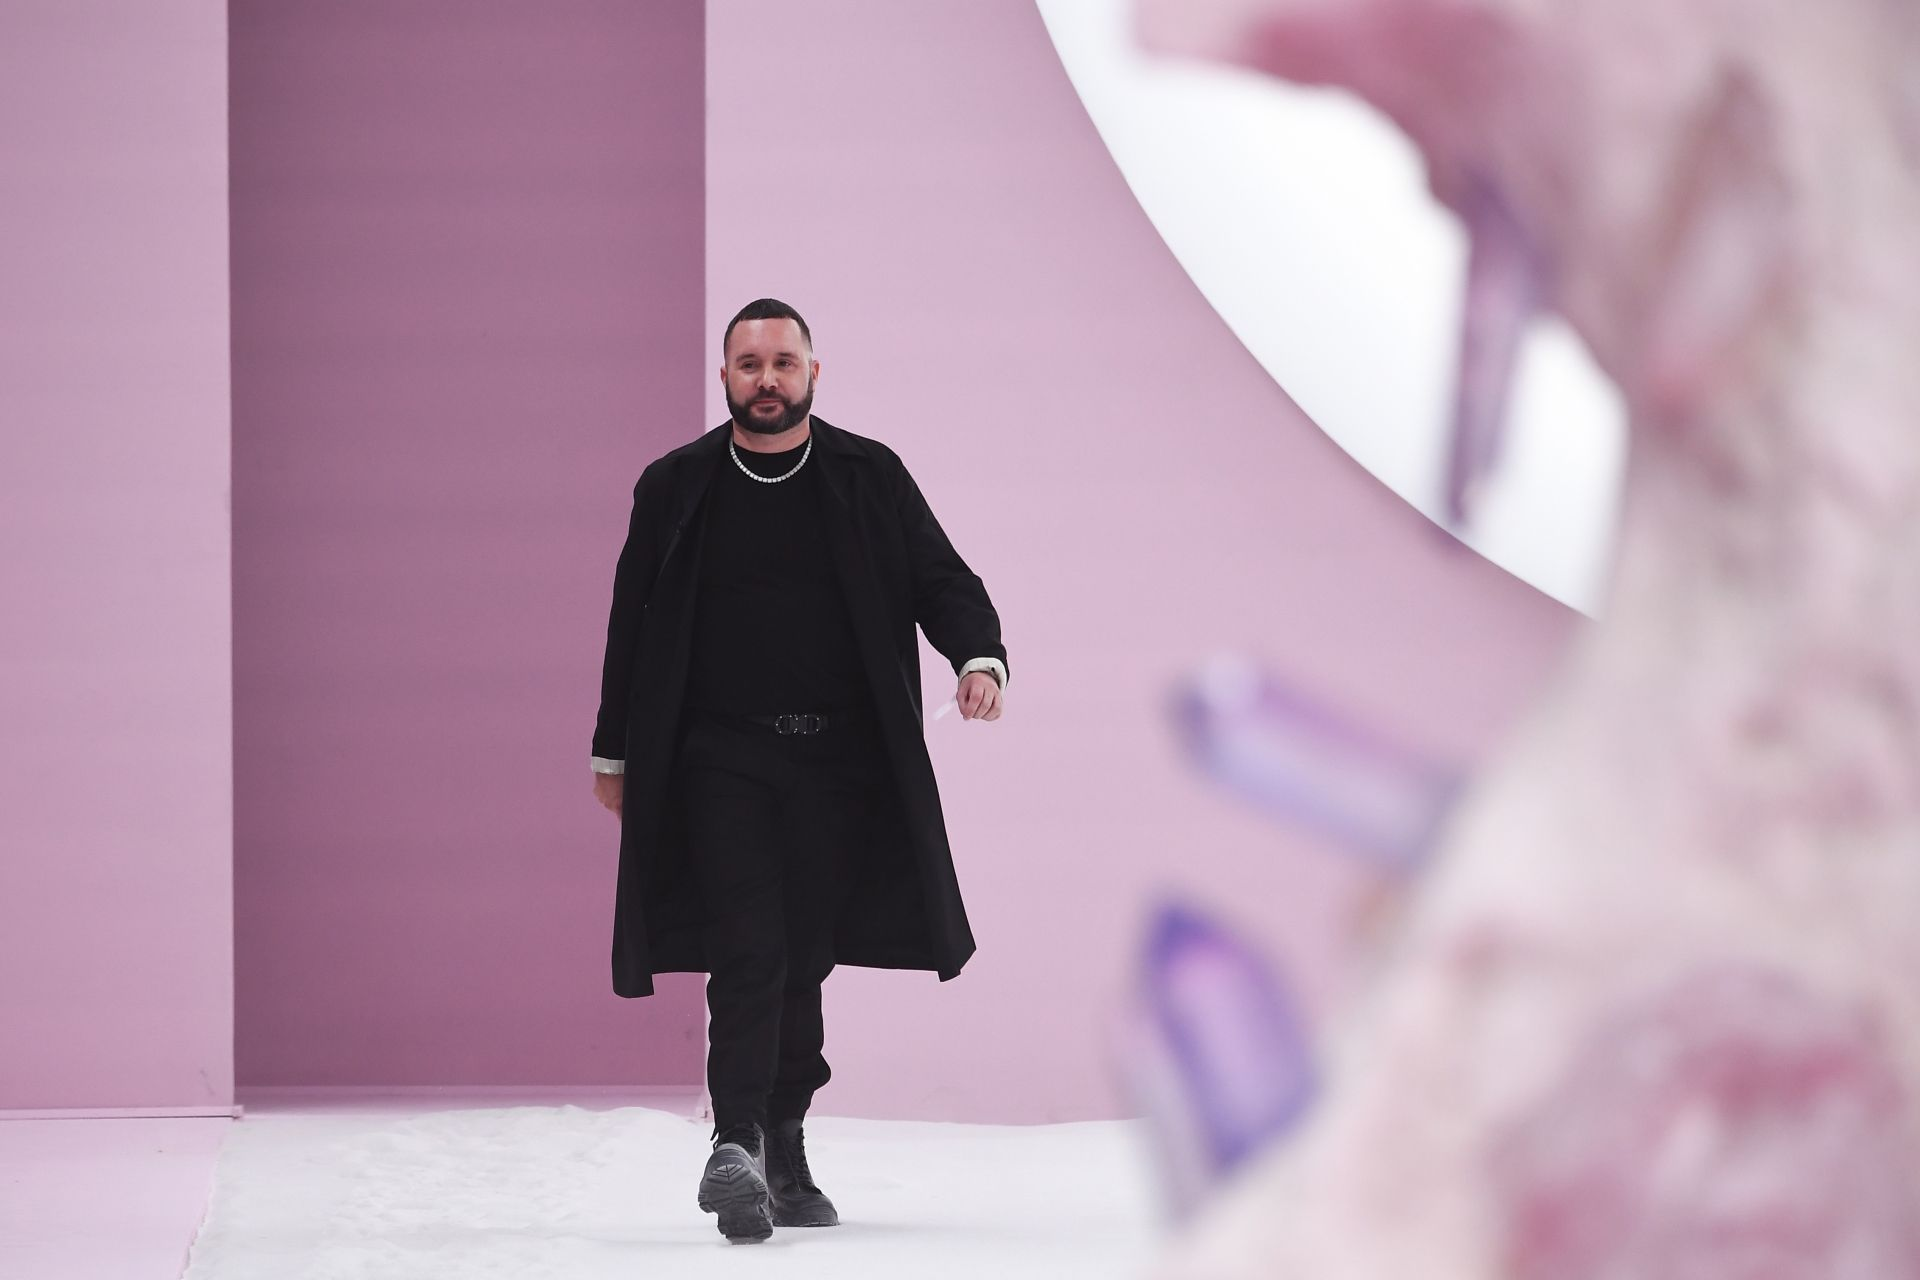 English fashion designer Kim Jones acknowledges the audience after the Dior Homme during the Men's spring/summer 2020 collection fashion show on June 21, 2019 in Paris. (Photo by Anne-Christine POUJOULAT / AFP)